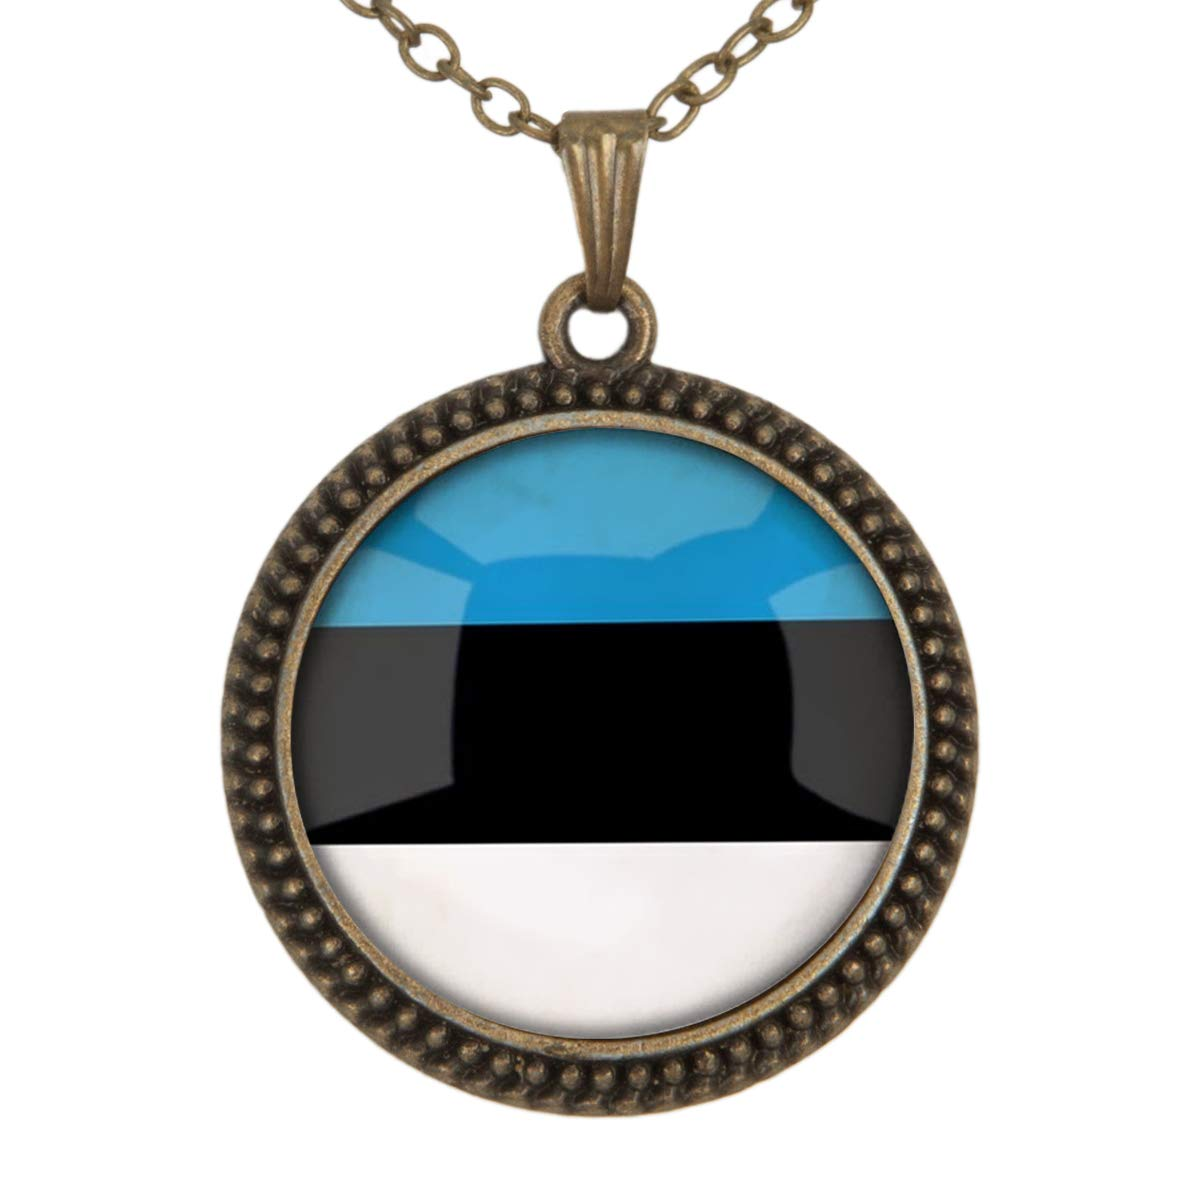 Family Decor The Republic of Estonia National Flag Pendant Necklace Cabochon Glass Vintage Bronze Chain Necklace Jewelry Handmade